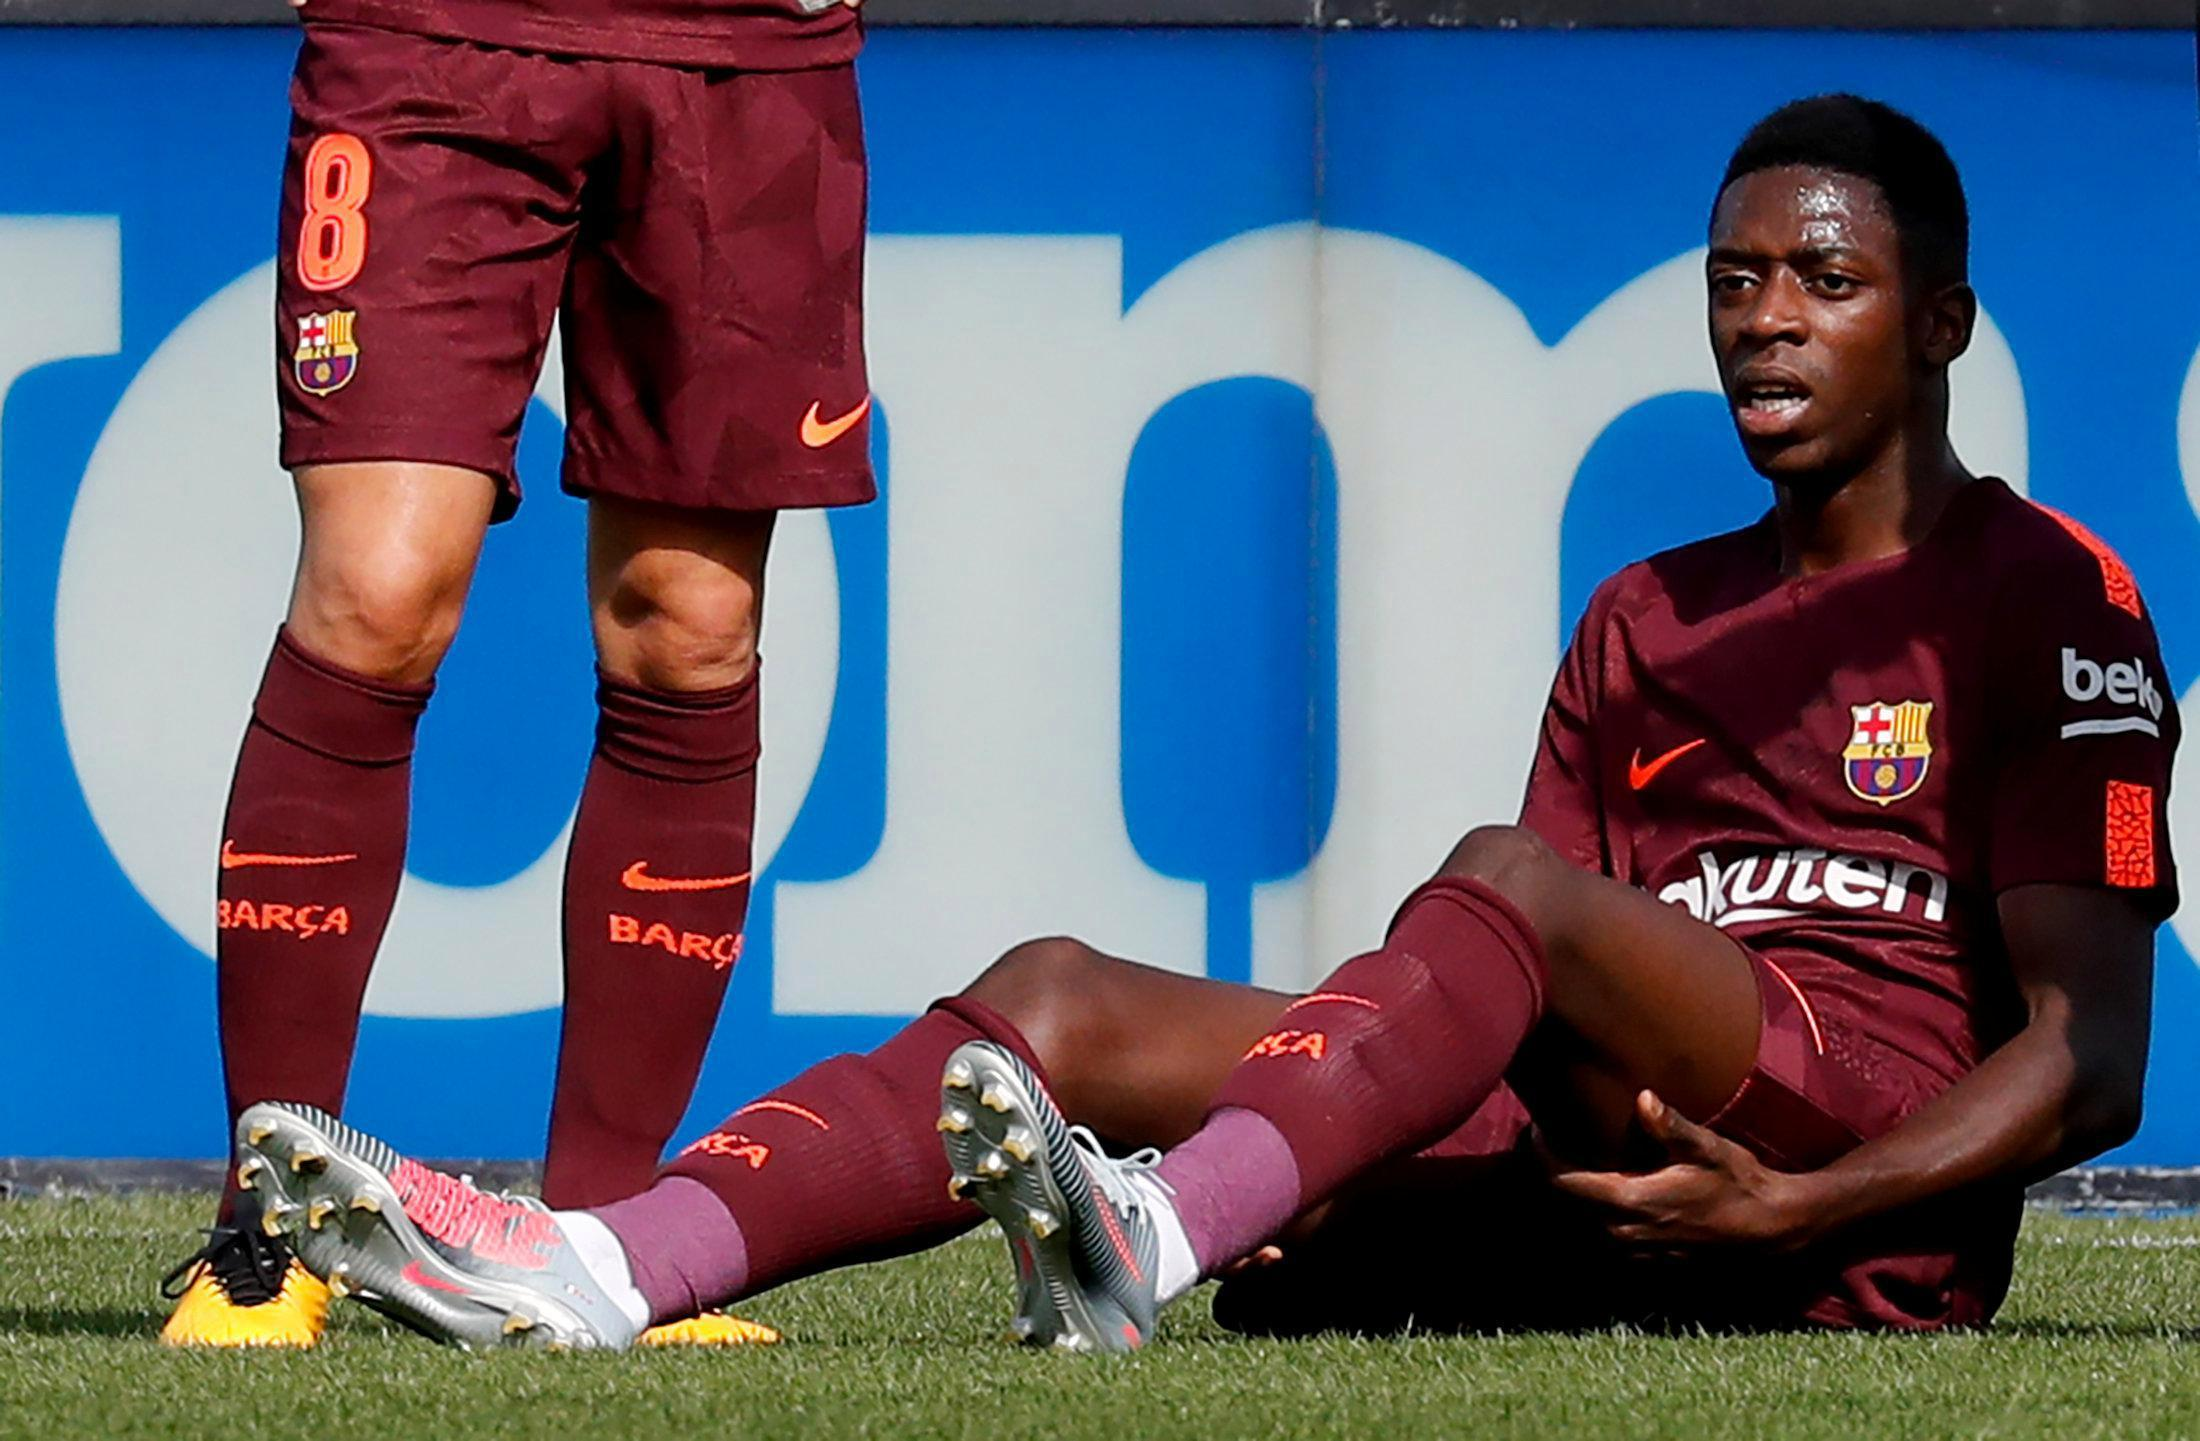 Dembele's injury problems started early